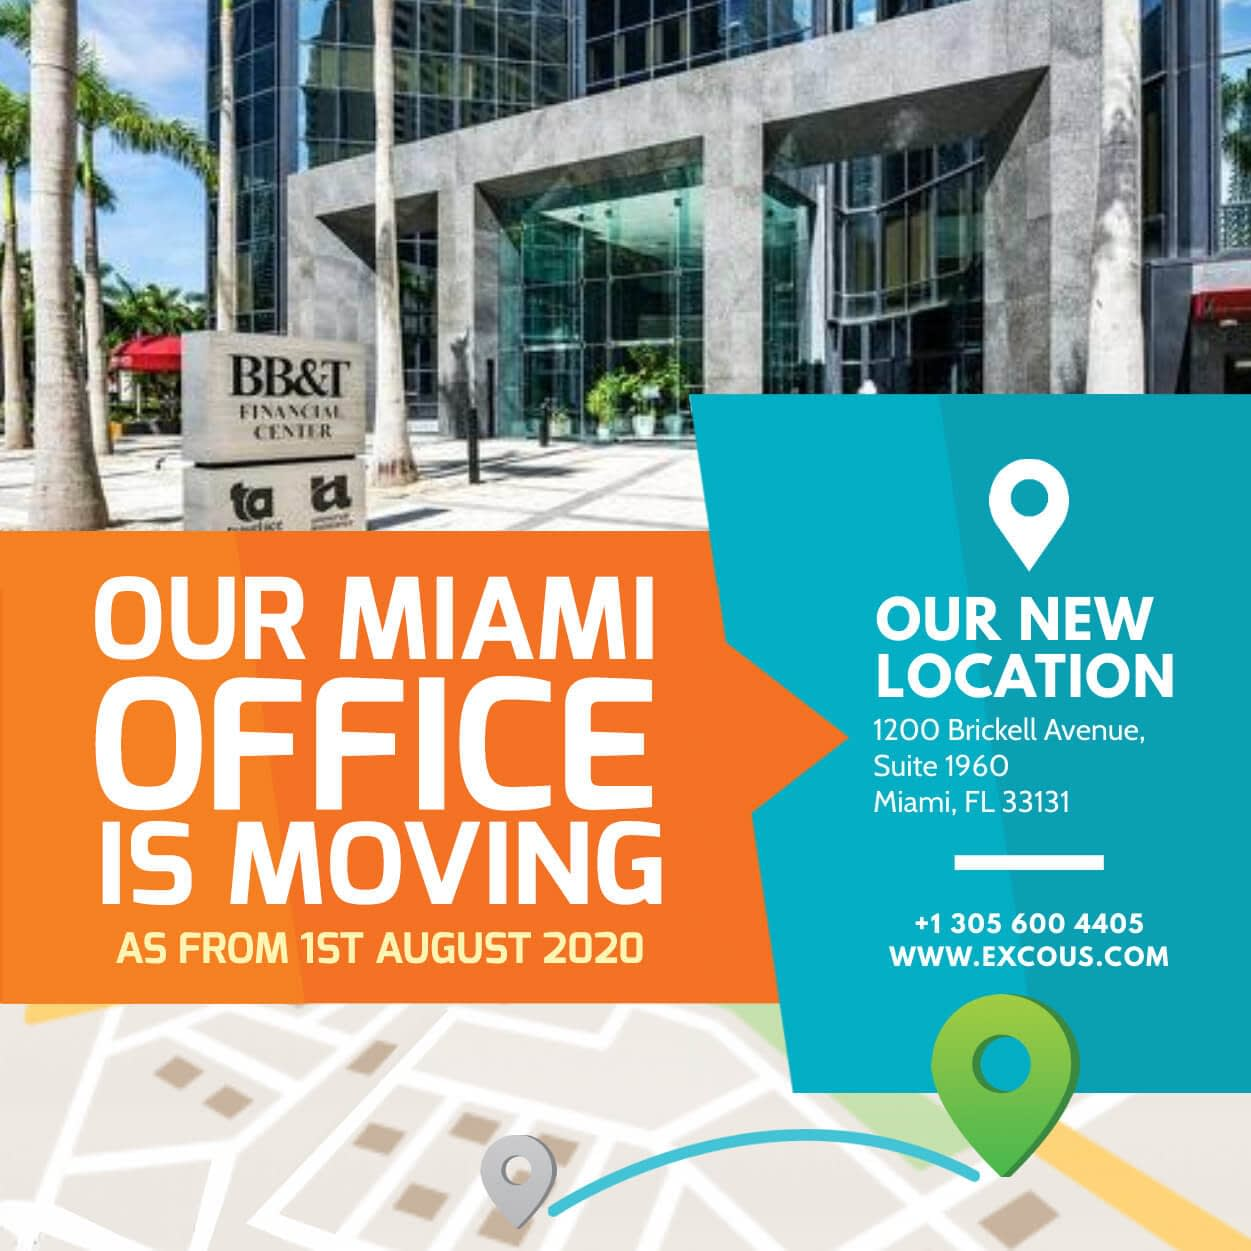 We are moving to Brickell